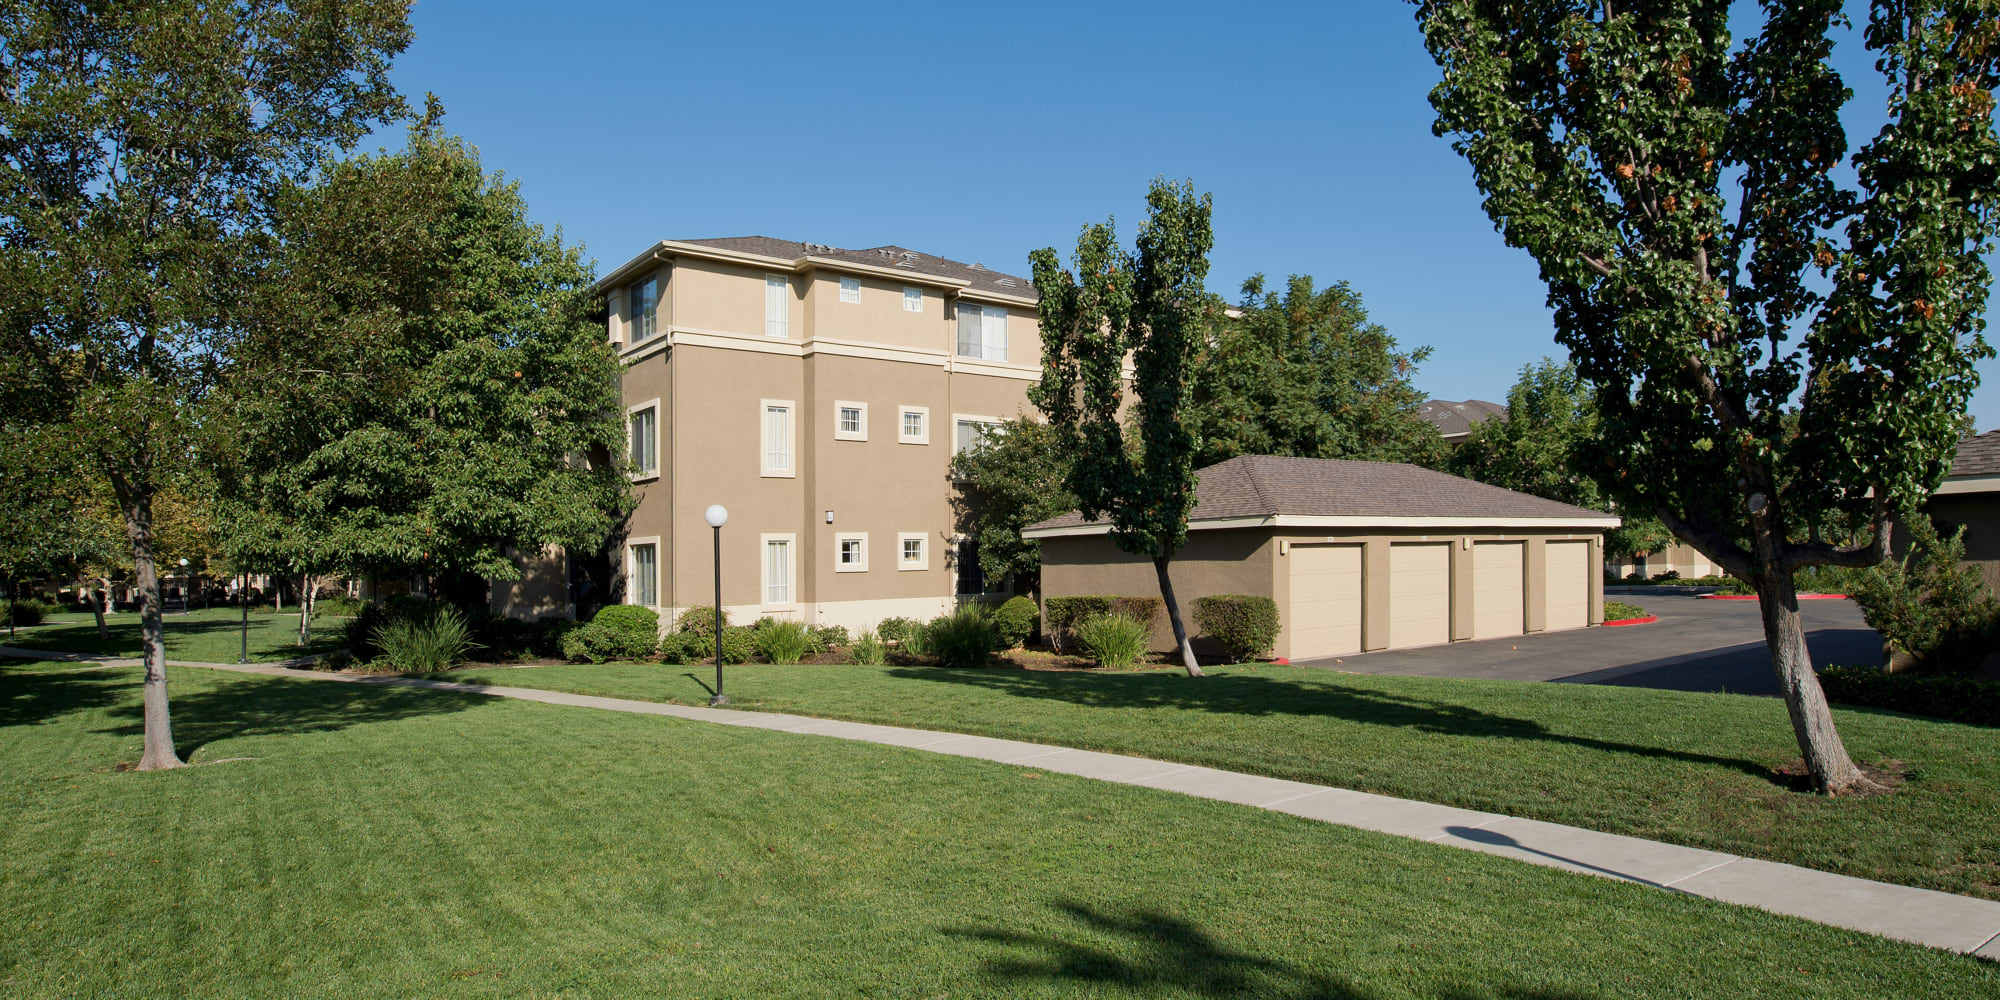 Antioch, California, apartments at Cross Pointe Apartment Homes